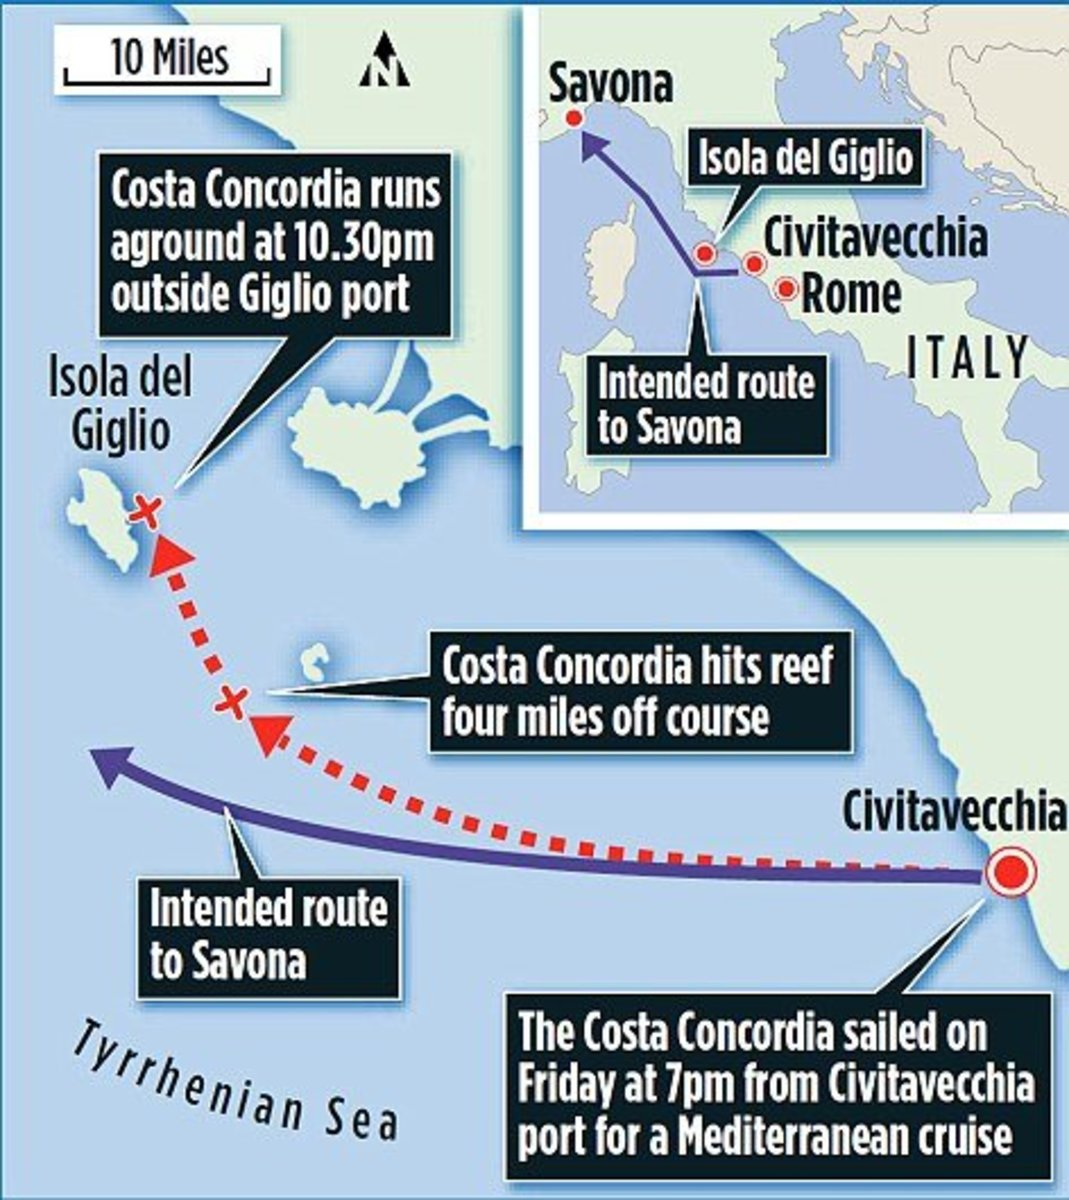 cruise-ship-disaster-in-tuscany-january-13-2012